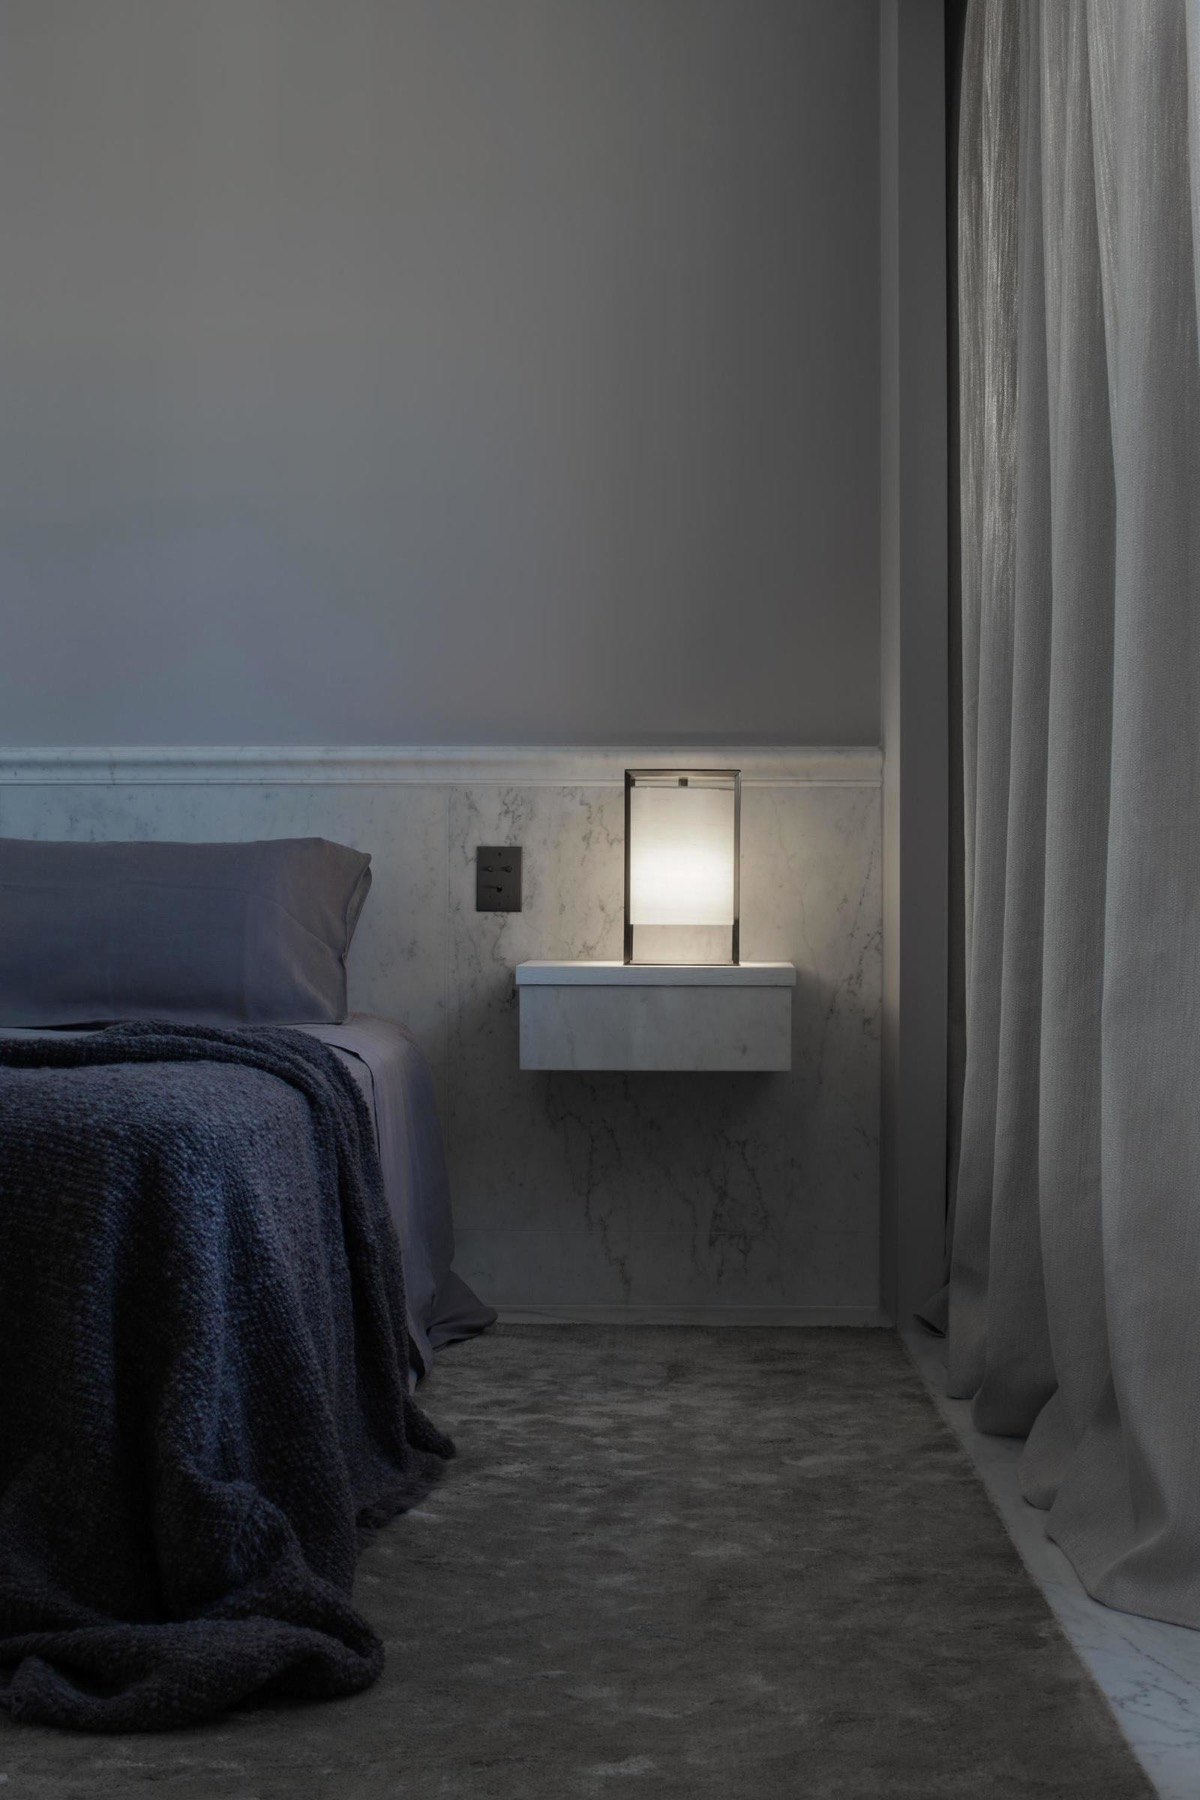 bedside-table-lamp-1-600x900.jpg